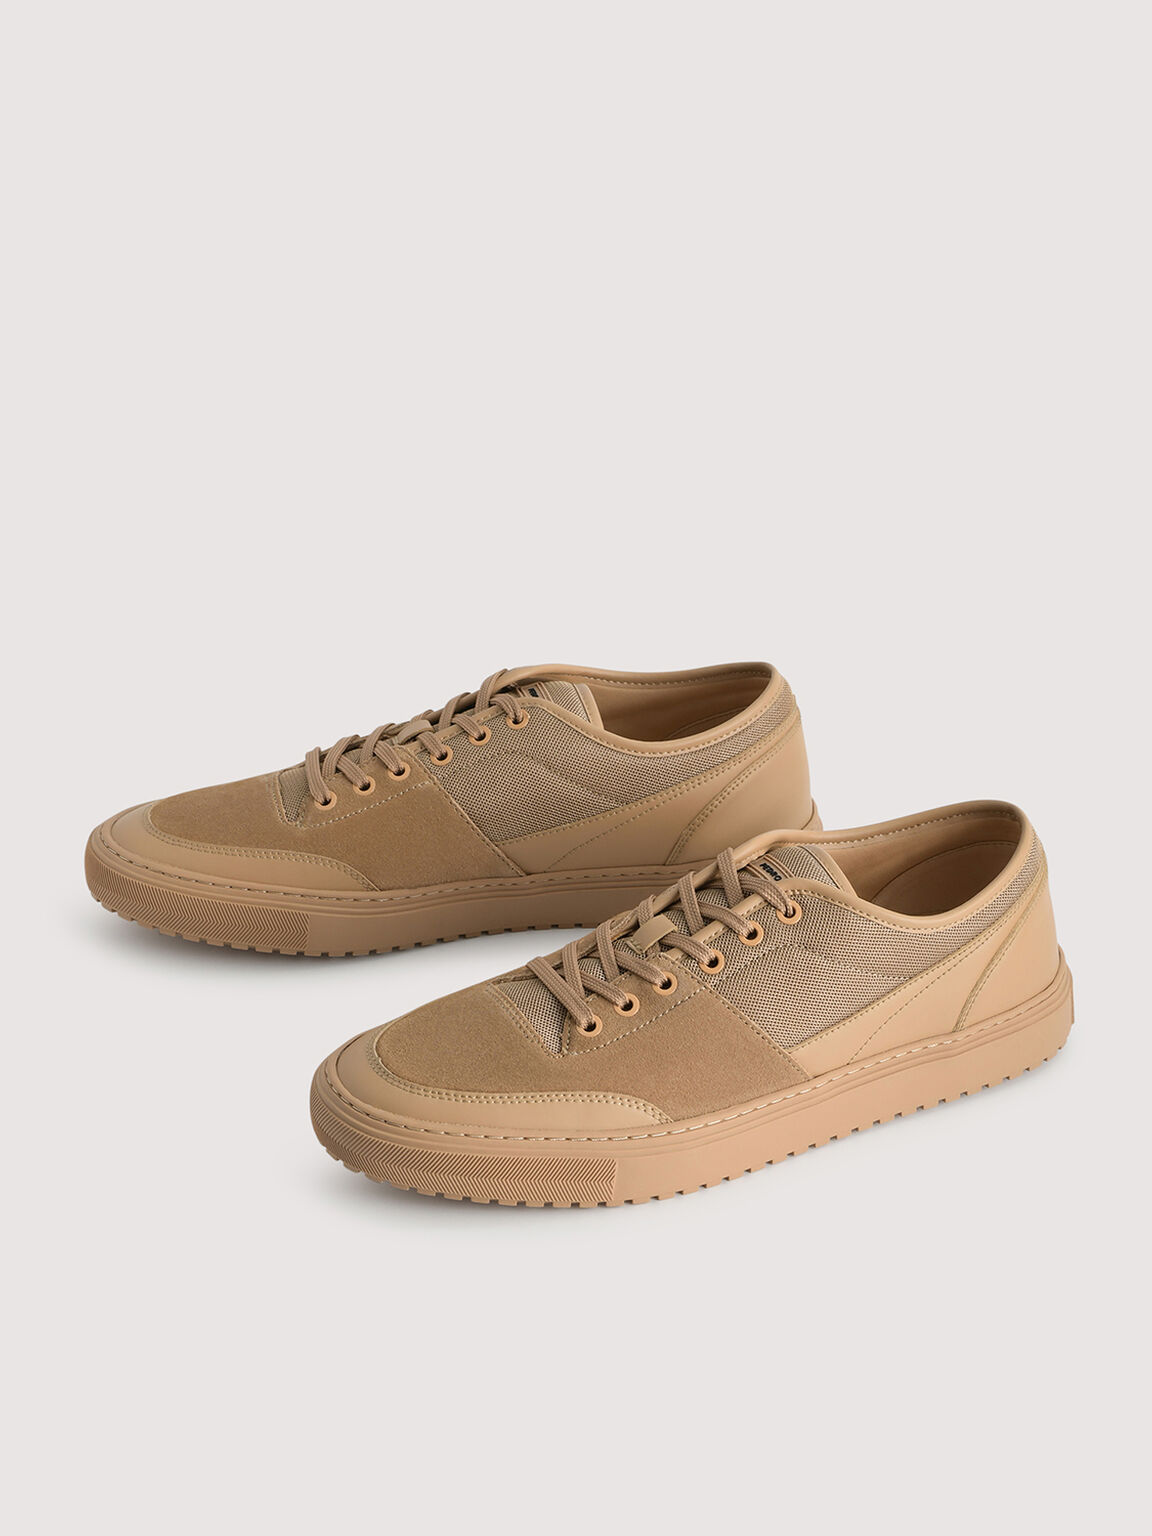 Mesh Lace-up Sneakers, Camel, hi-res